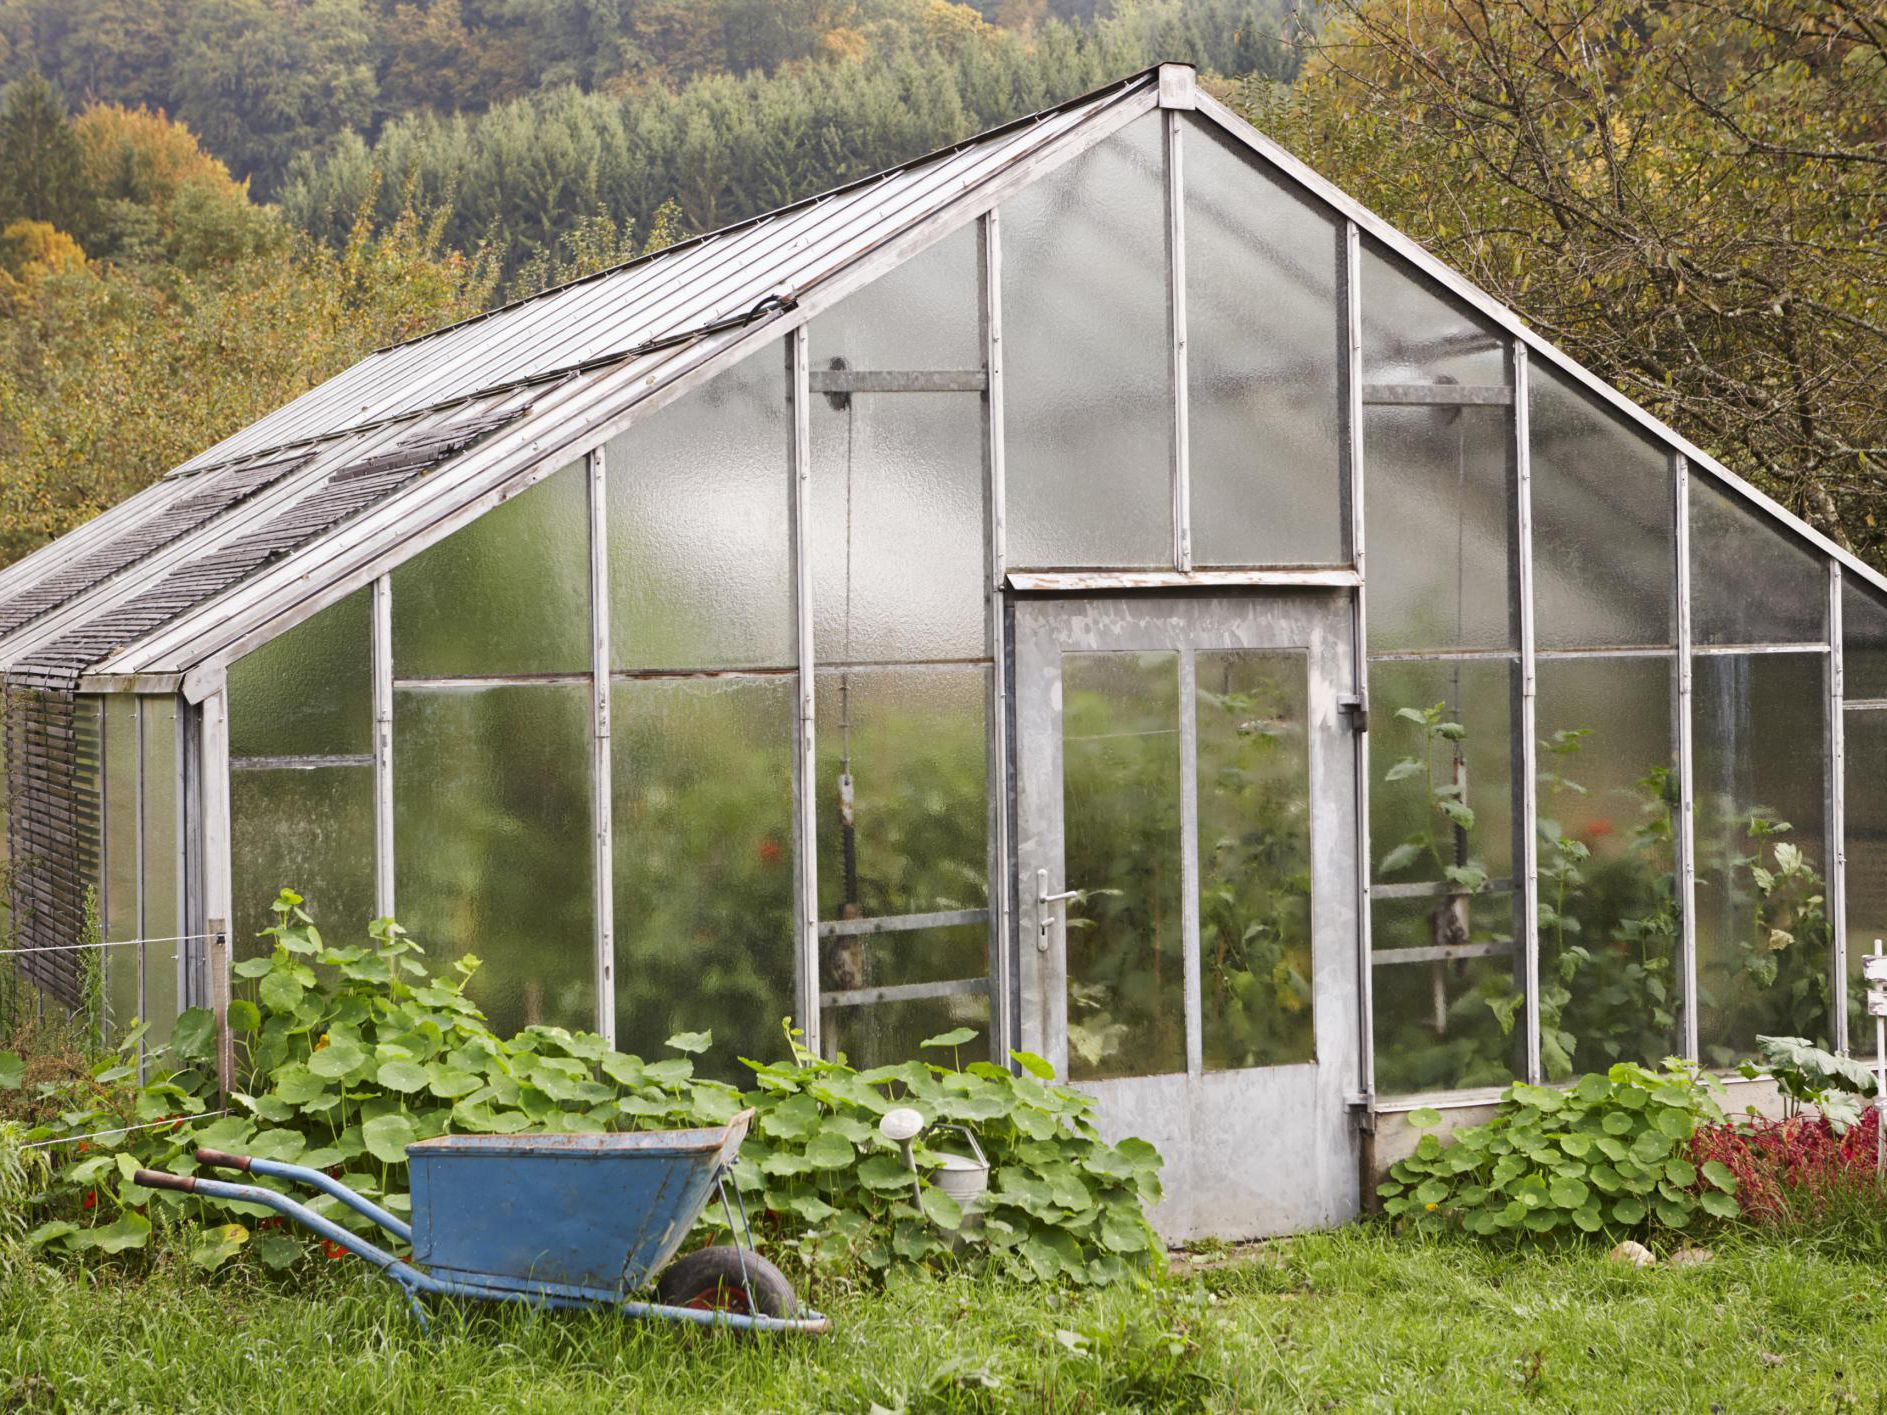 Greenhouse Siding And Glazing Advice And Instructions